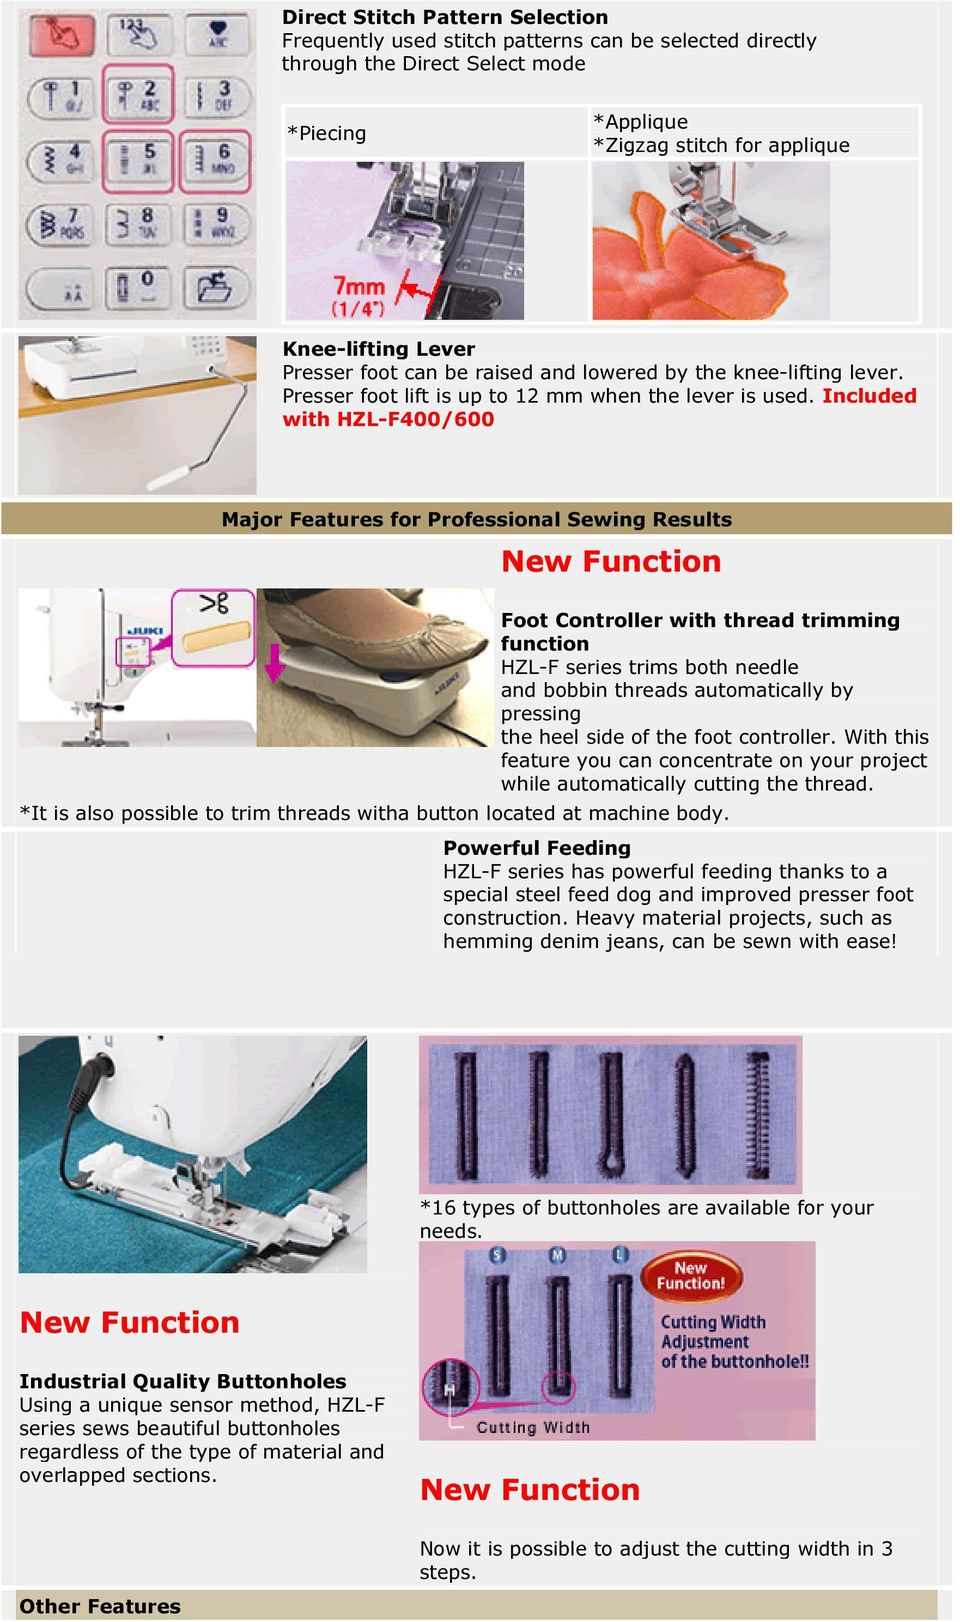 Included with HZL-F400/600 Major Features for Professional Sewing Results New Function Foot Controller with thread trimming function HZL-F series trims both needle and bobbin threads automatically by